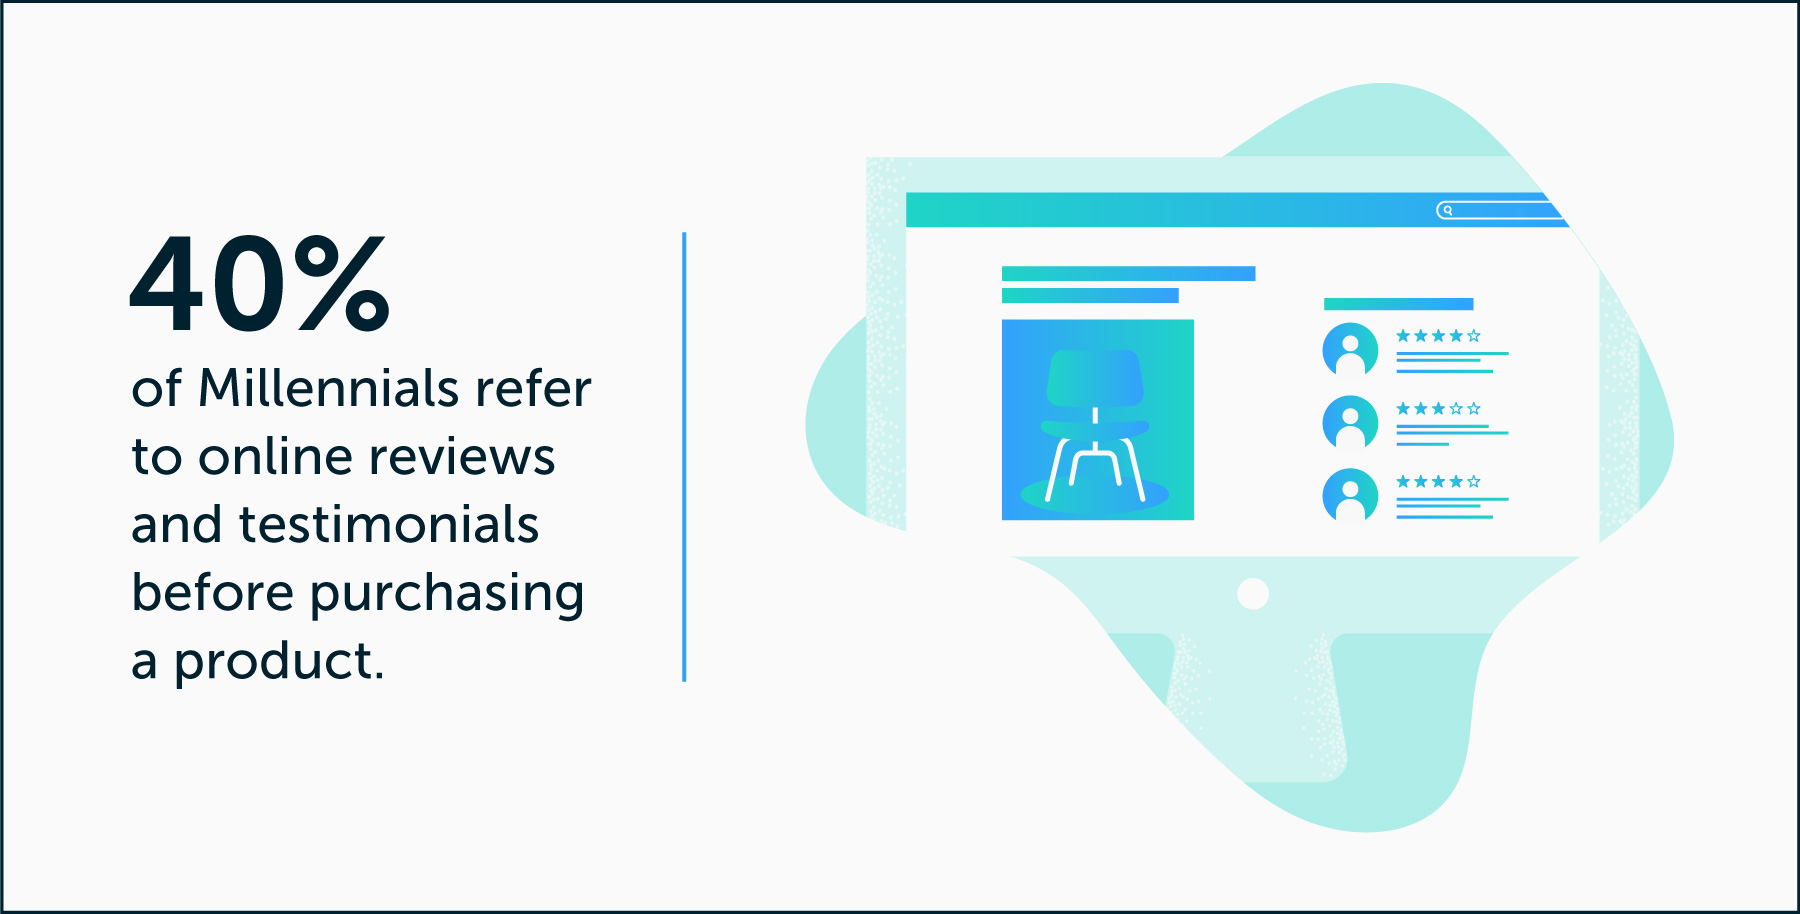 40 percent of millennials refer to online reviews and testimonials before purchasing product